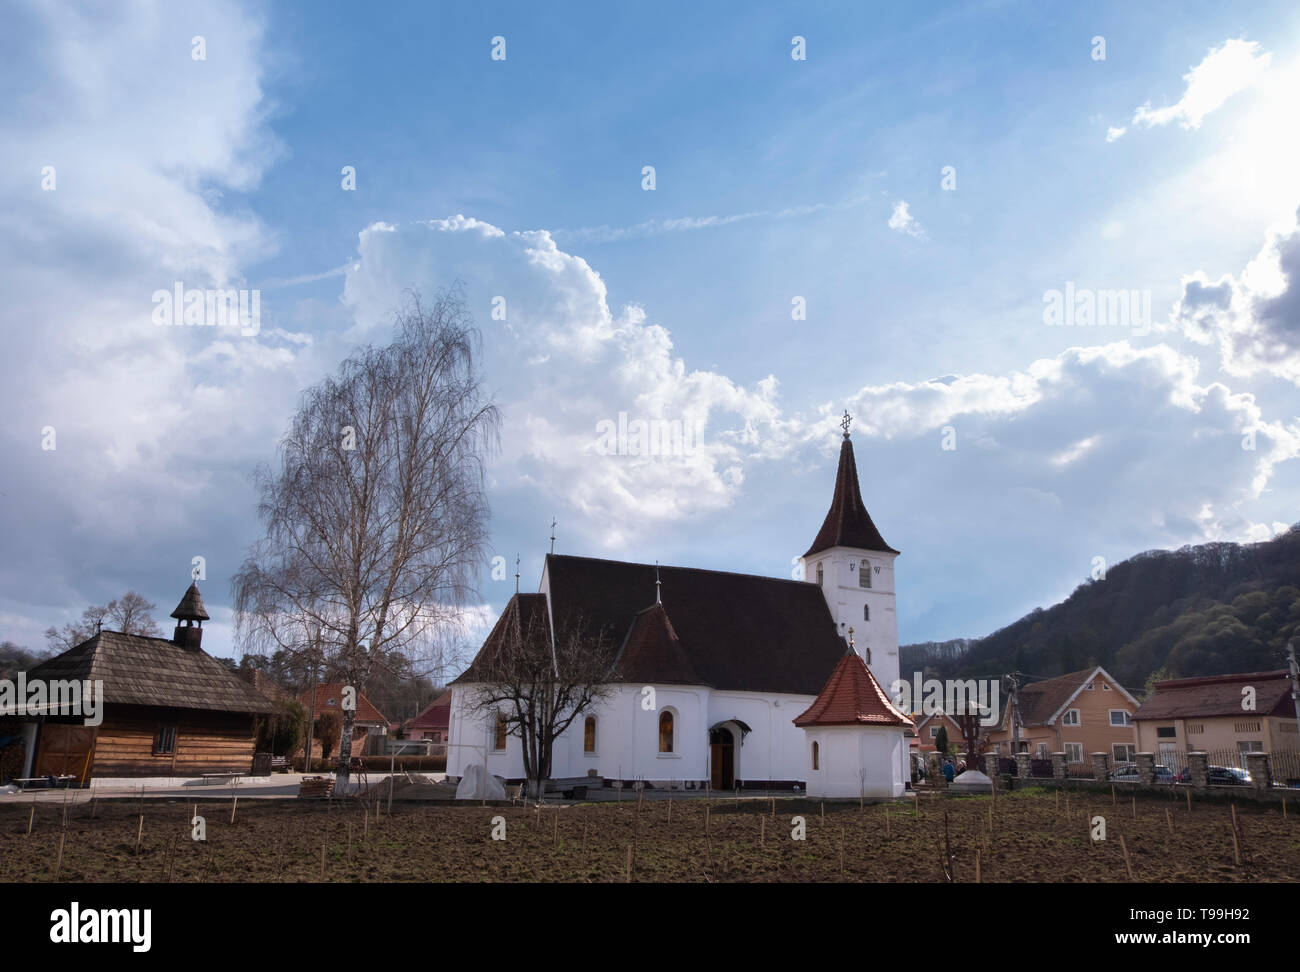 Church of the Mother of God in the Church, the oldest orthodox church in Sighisoara and the first Romanian stone church in the area, dating to 1797, o - Stock Image